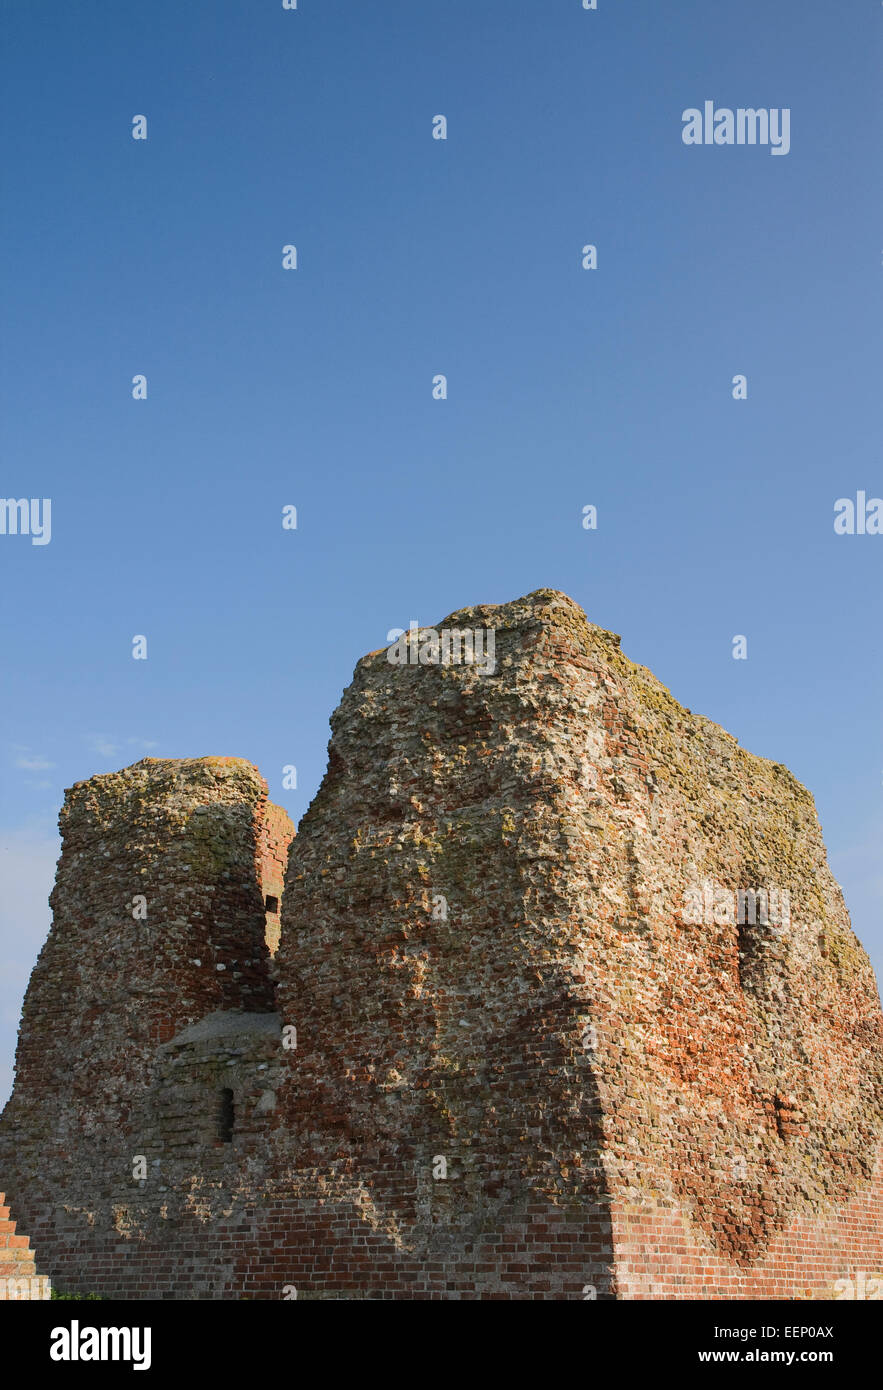 Part of the ruined castle at Kalo near Aarhus, Denmark - Stock Image